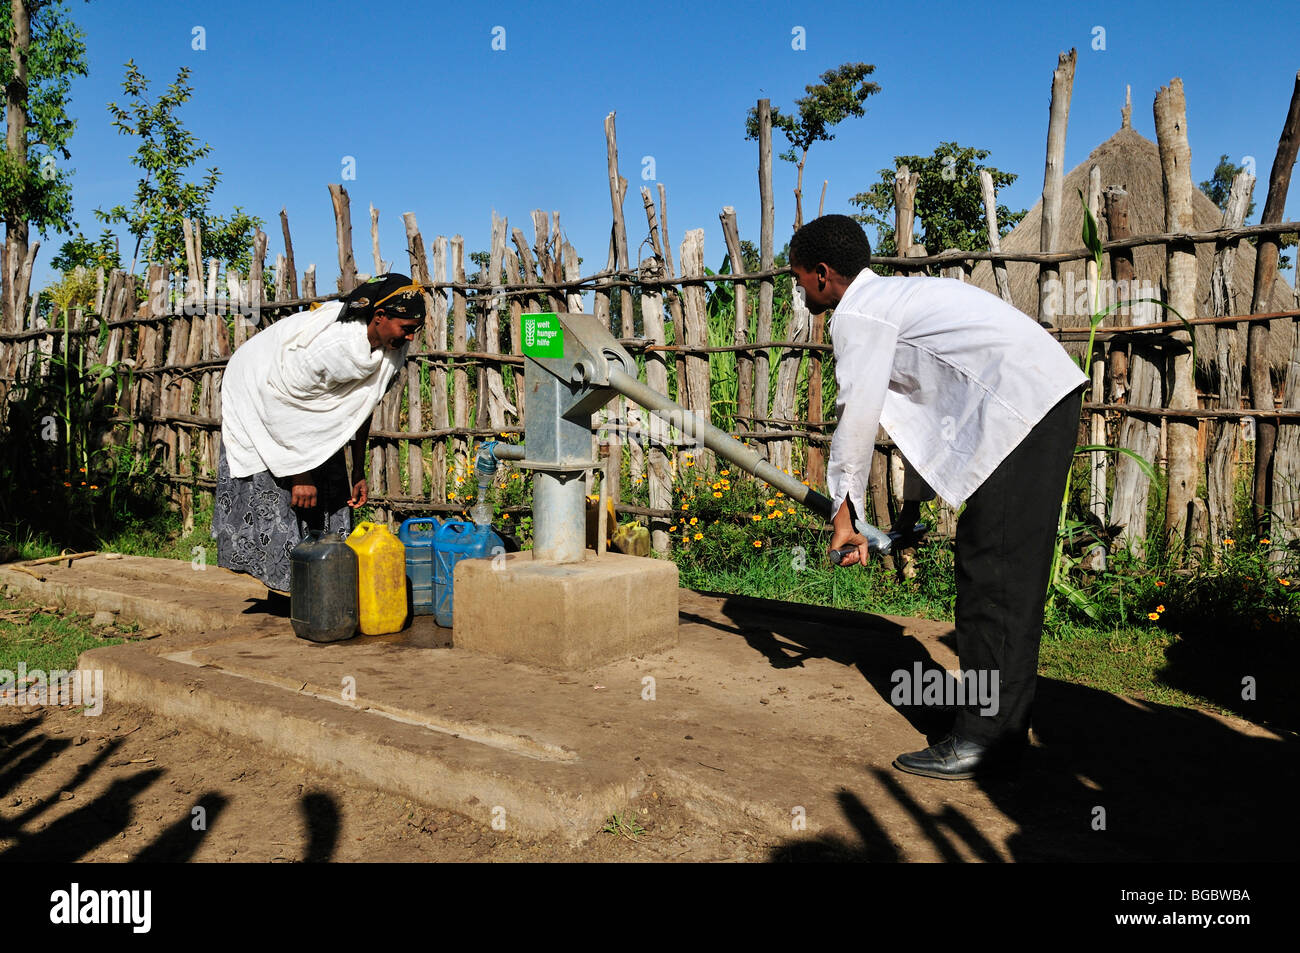 African people pumping water at a newly built waterpump, Rift Valley, Oromia, Ethiopia, Africa - Stock Image